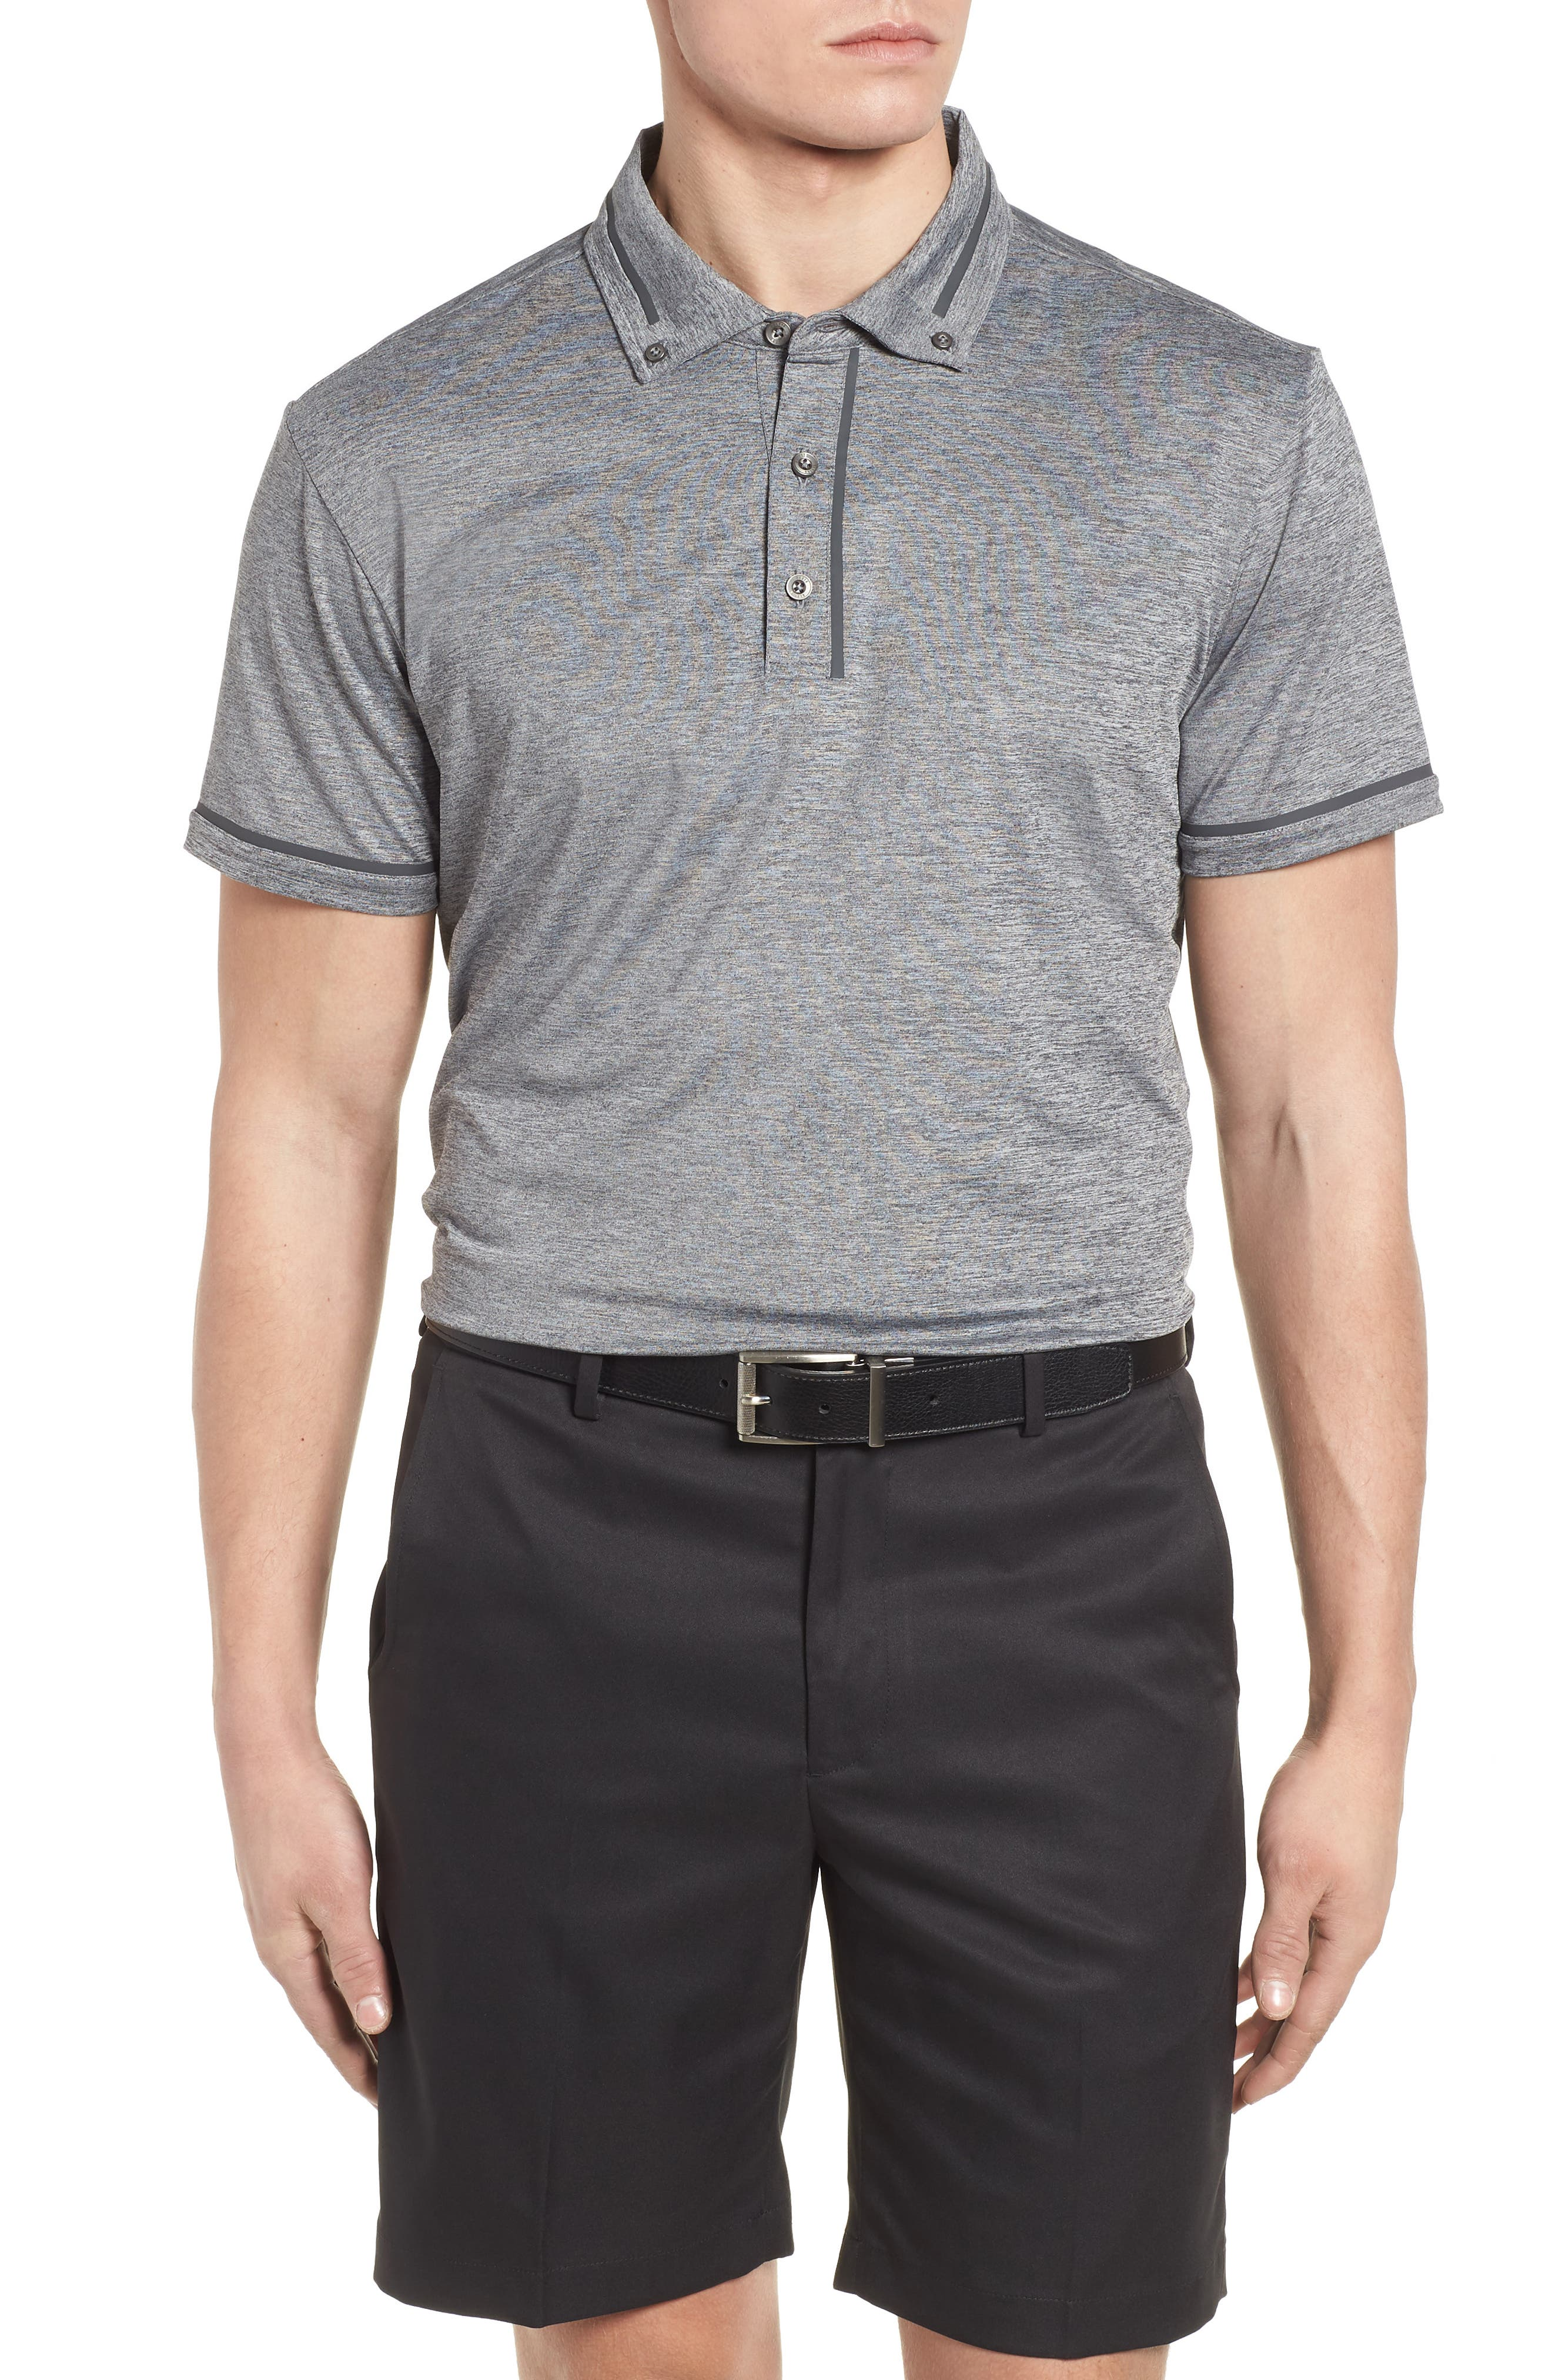 R18 Tech Chapman Welded Trim Polo,                         Main,                         color, CHARCOAL HEATHER